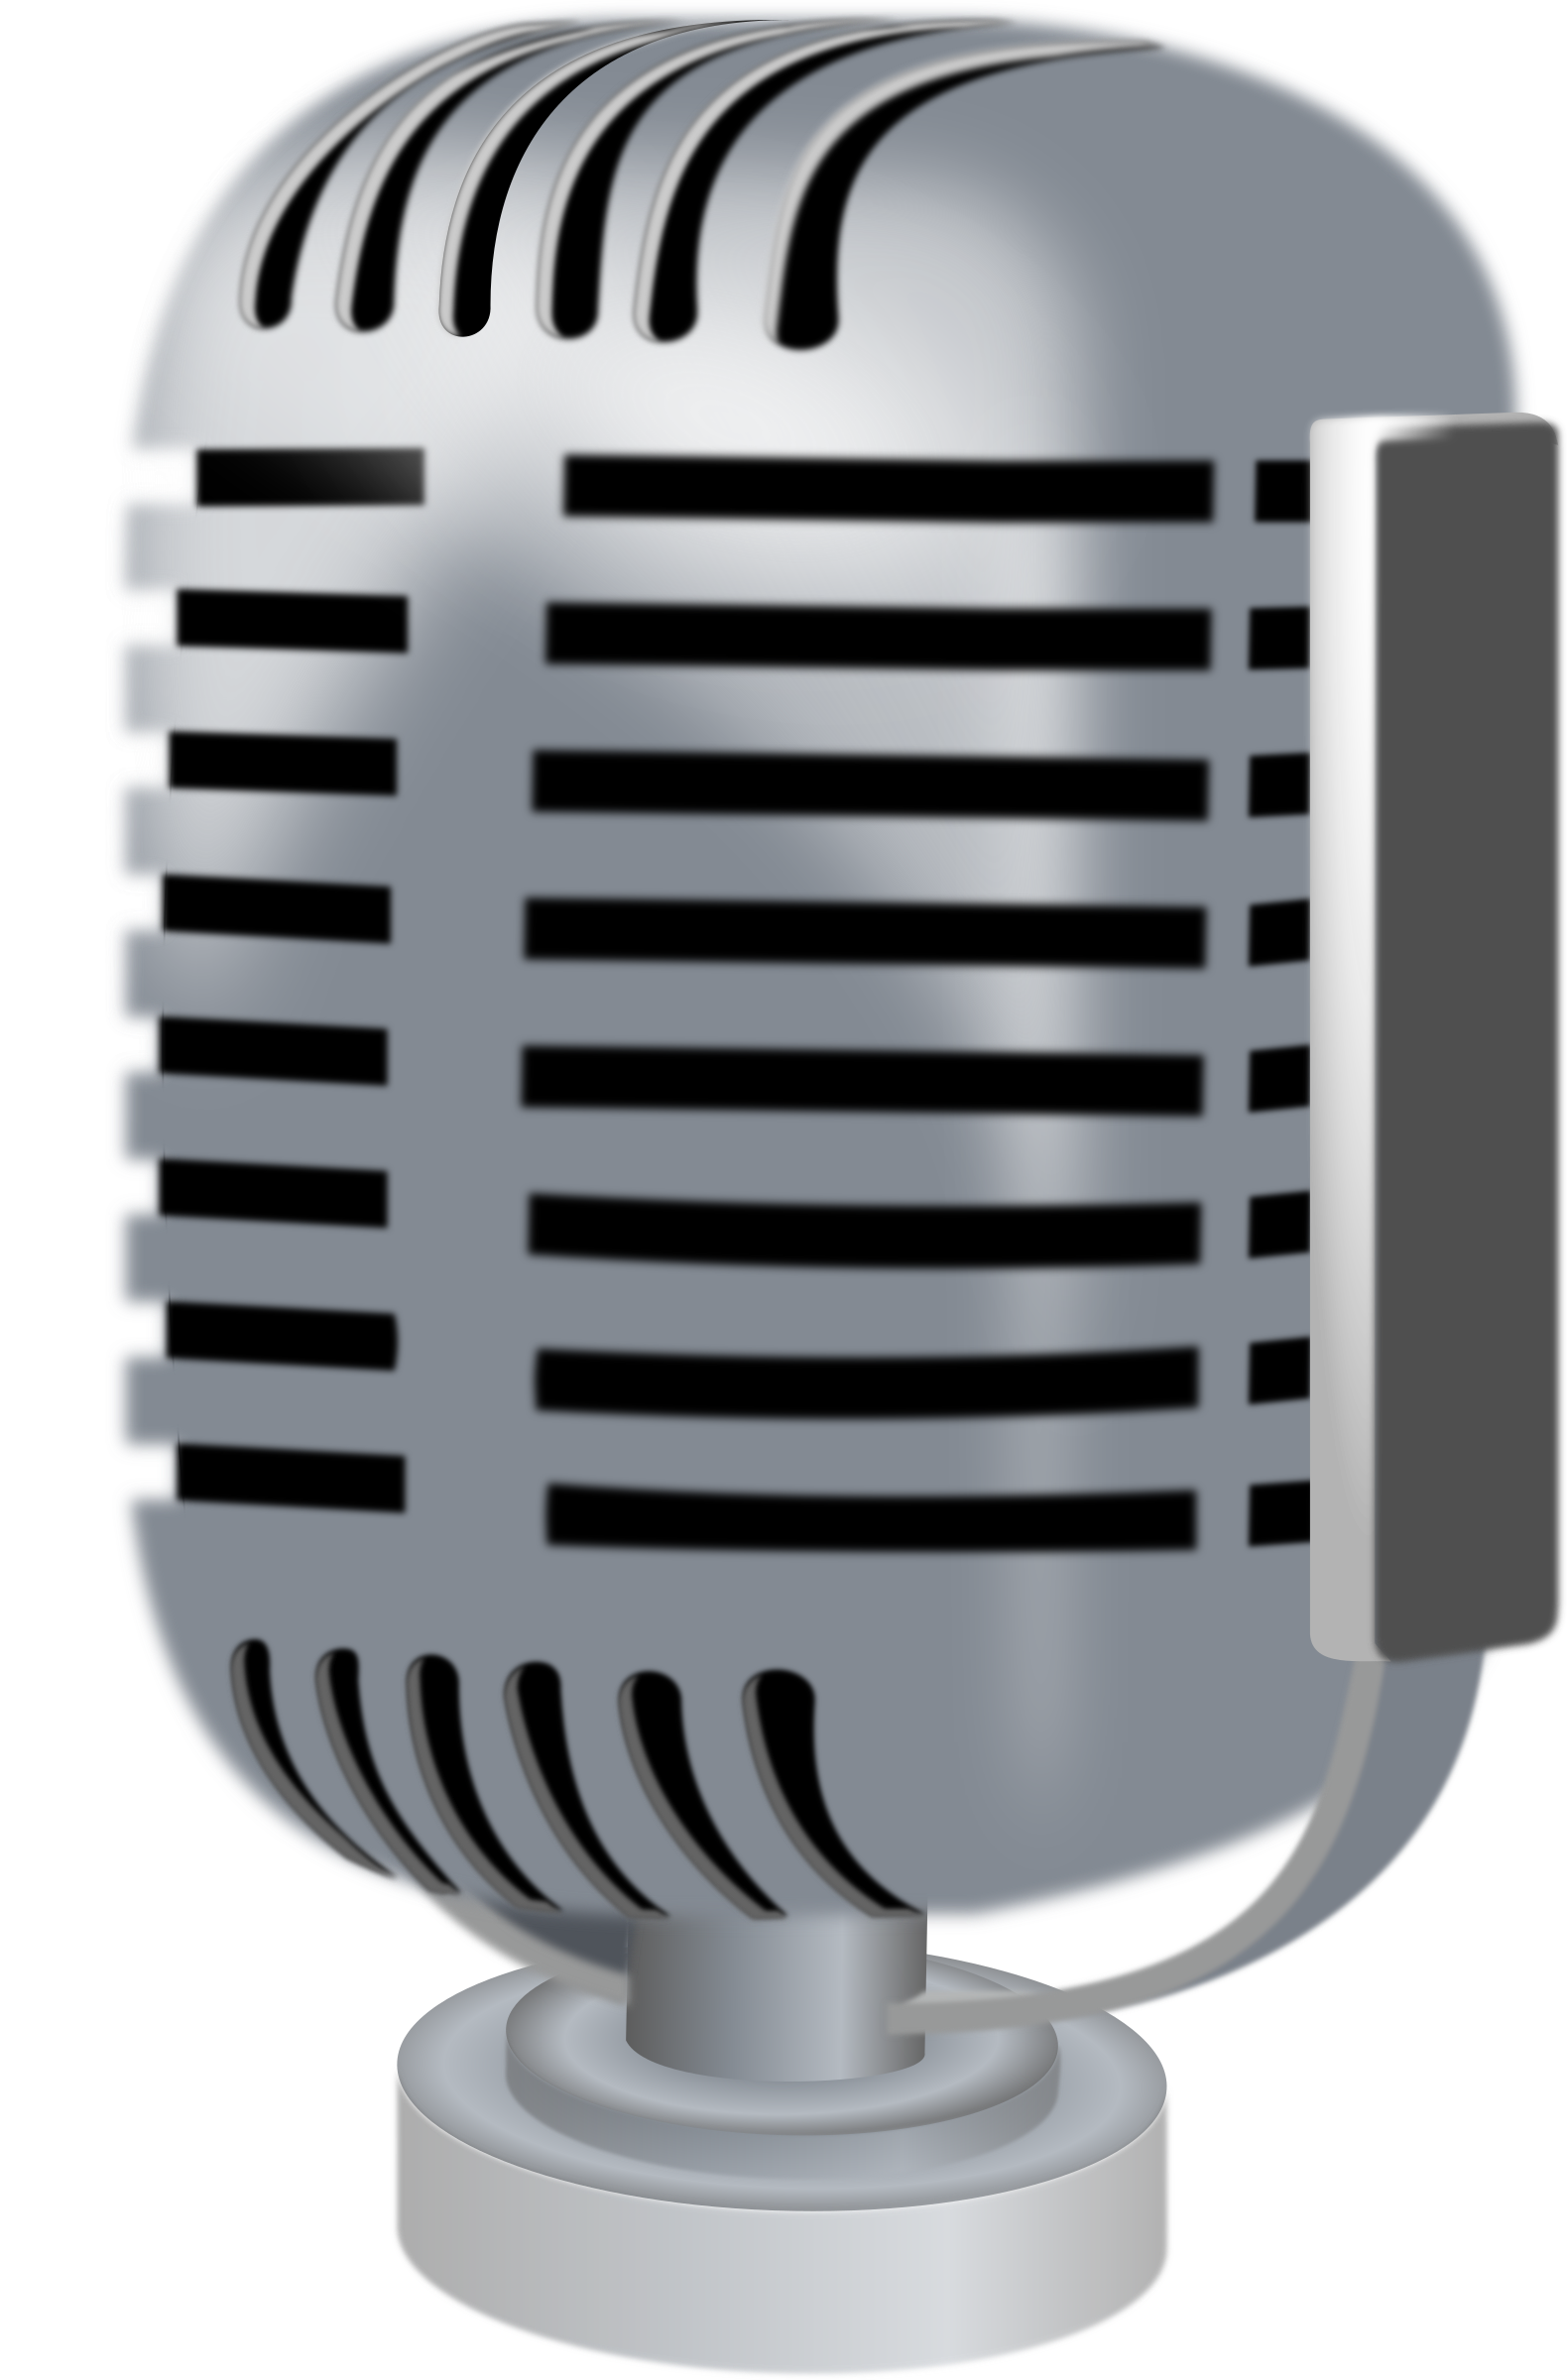 Microphone clipart pdf. Old style big image